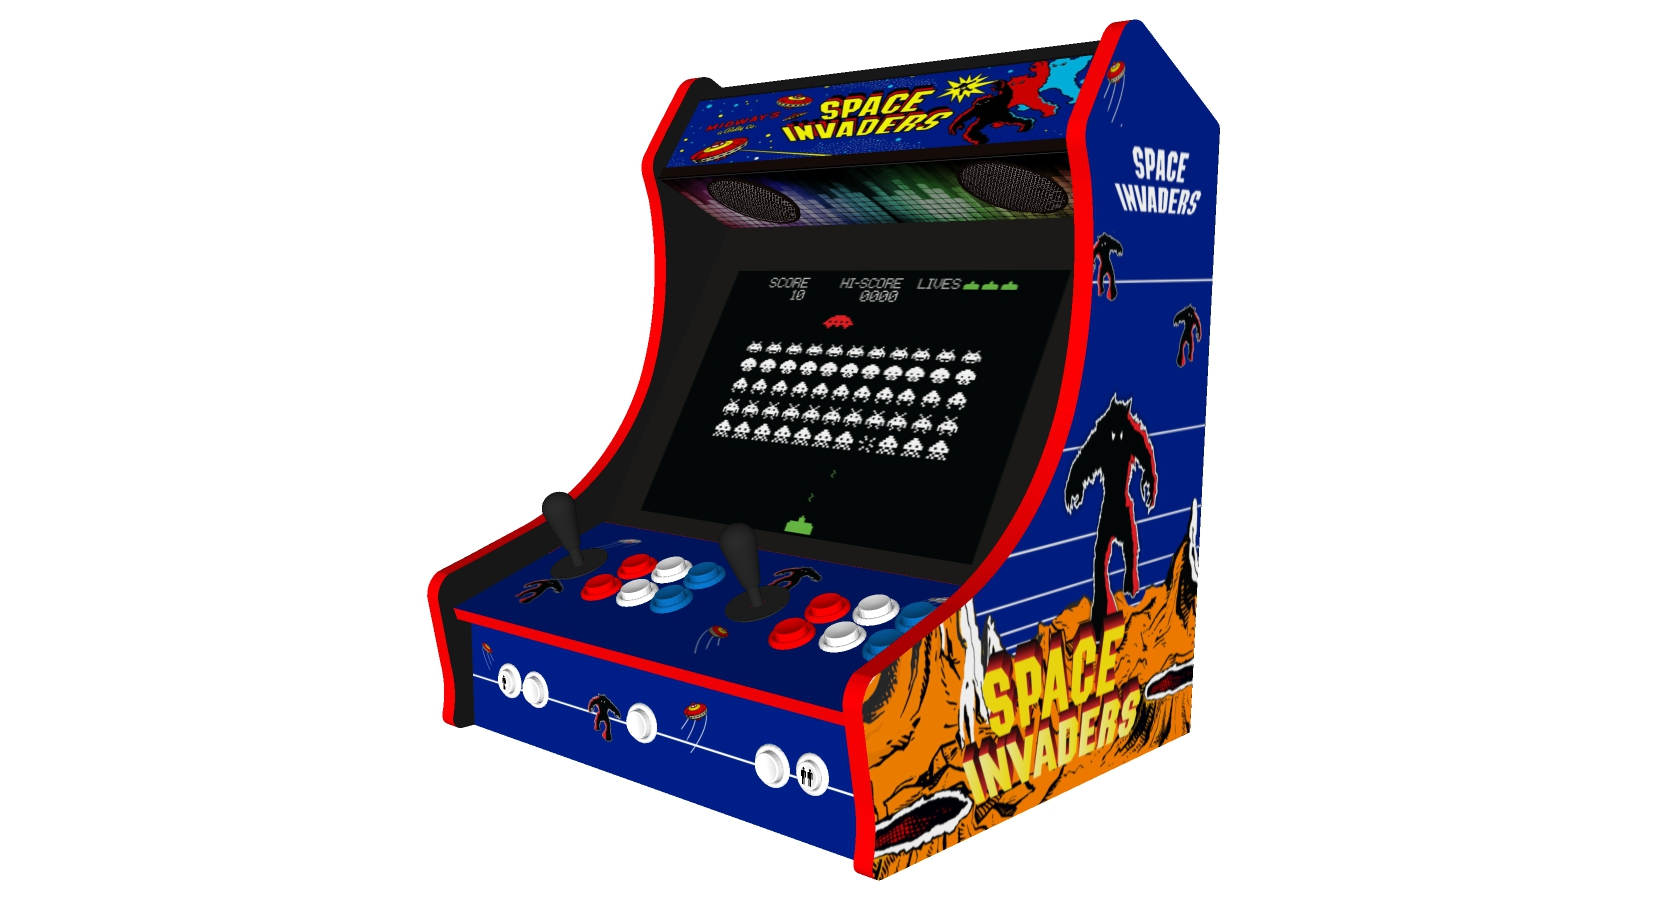 Classic Bartop Arcade - Space Invaders theme RetroPI with 15,000 games - black bezel - right side